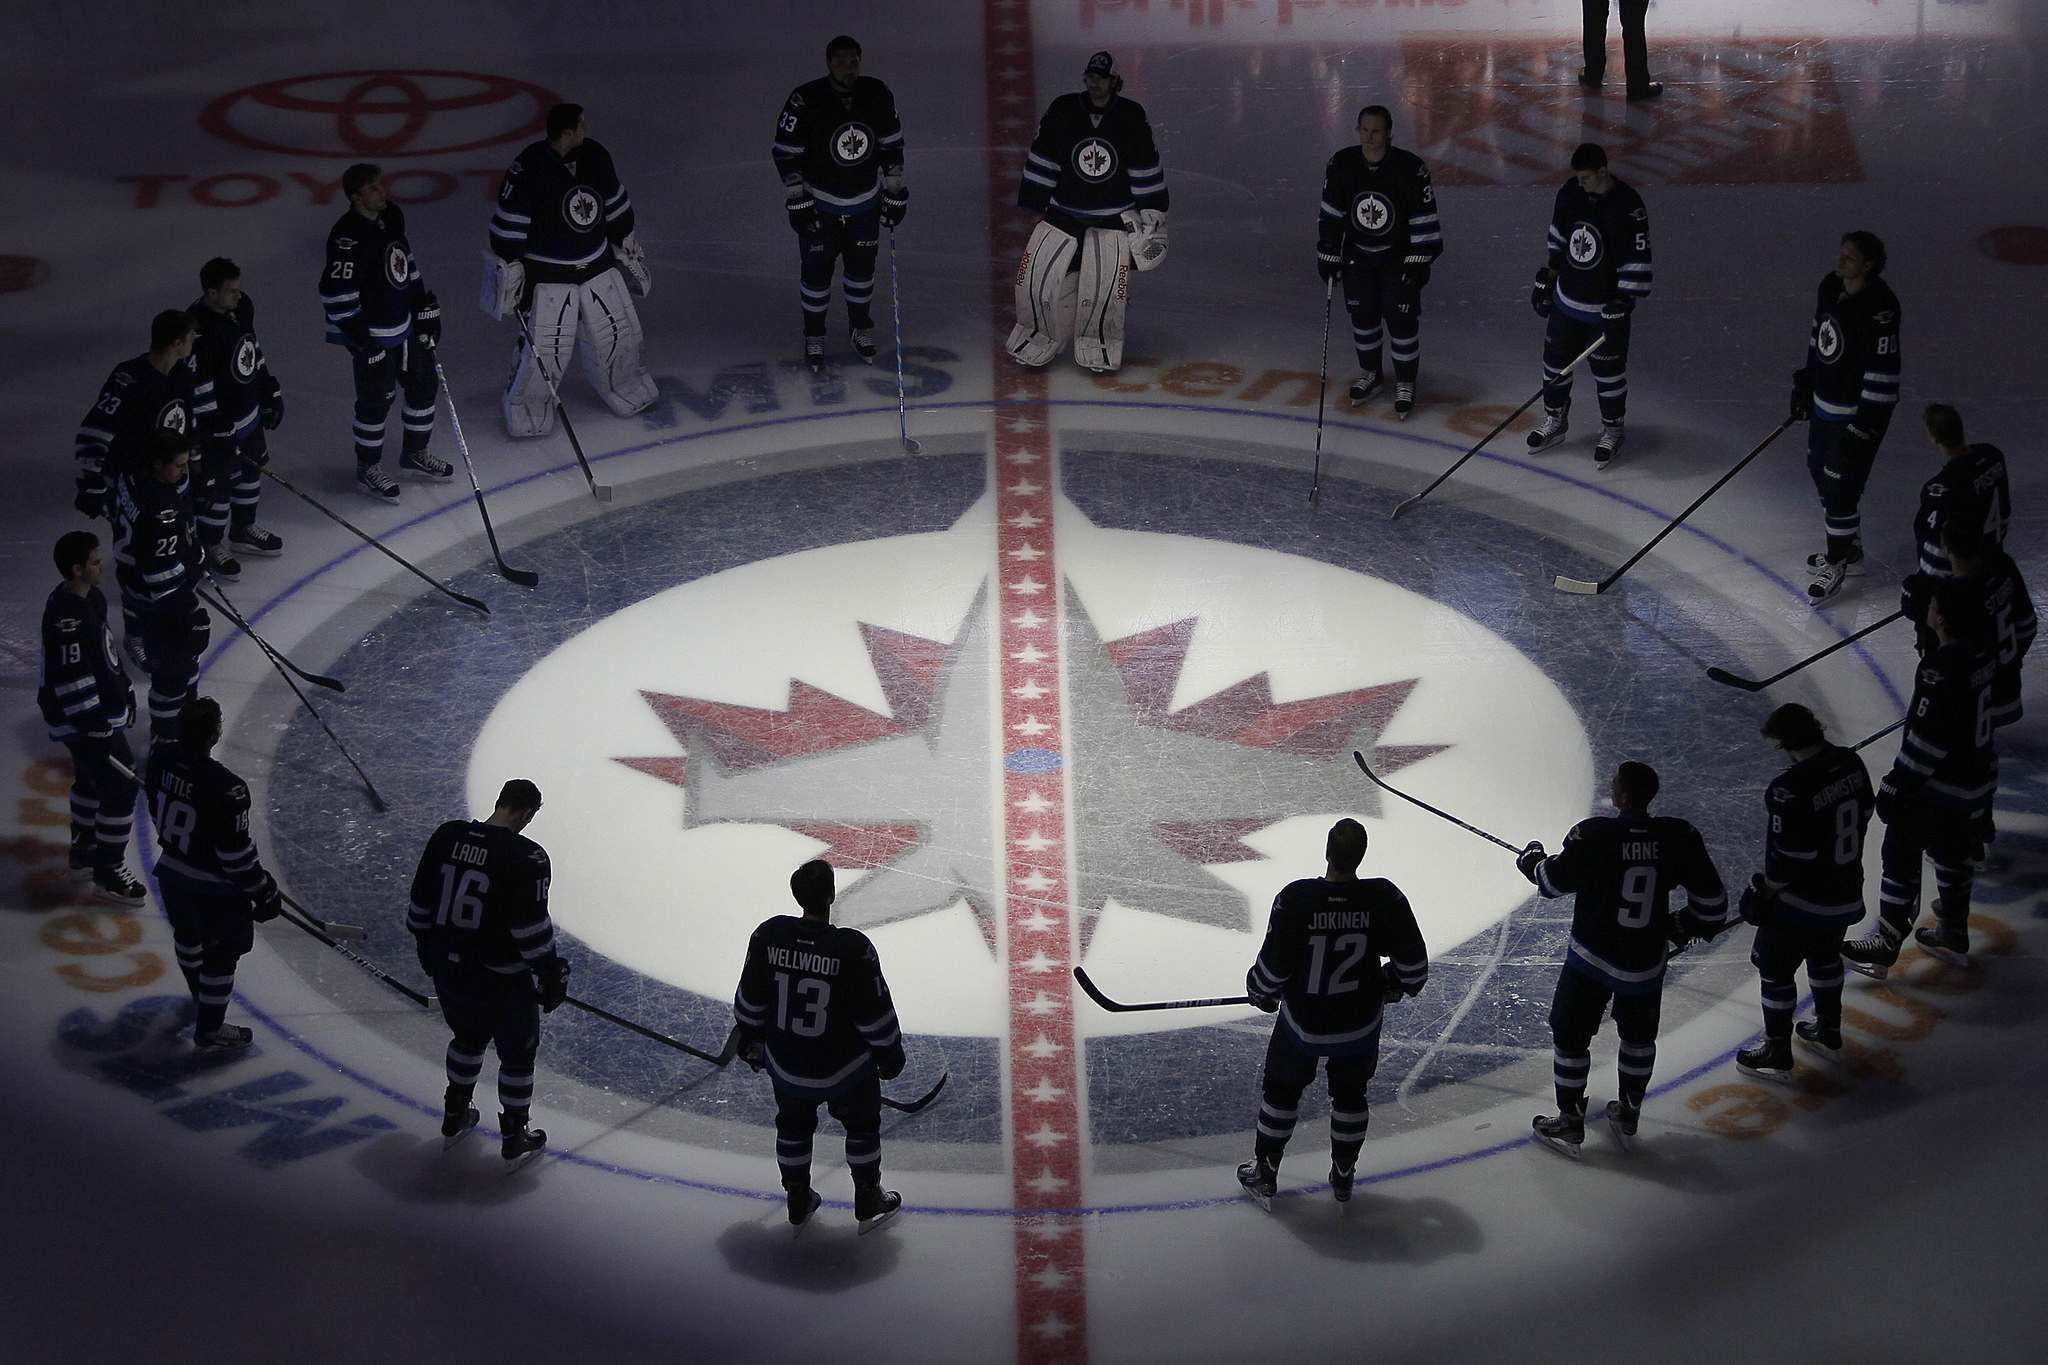 The Winnipeg Jets in 2013 (above) iced a radically different lineup compared to last season, and next year's roster will change yet again. (John Woods / The Canadian Press files)